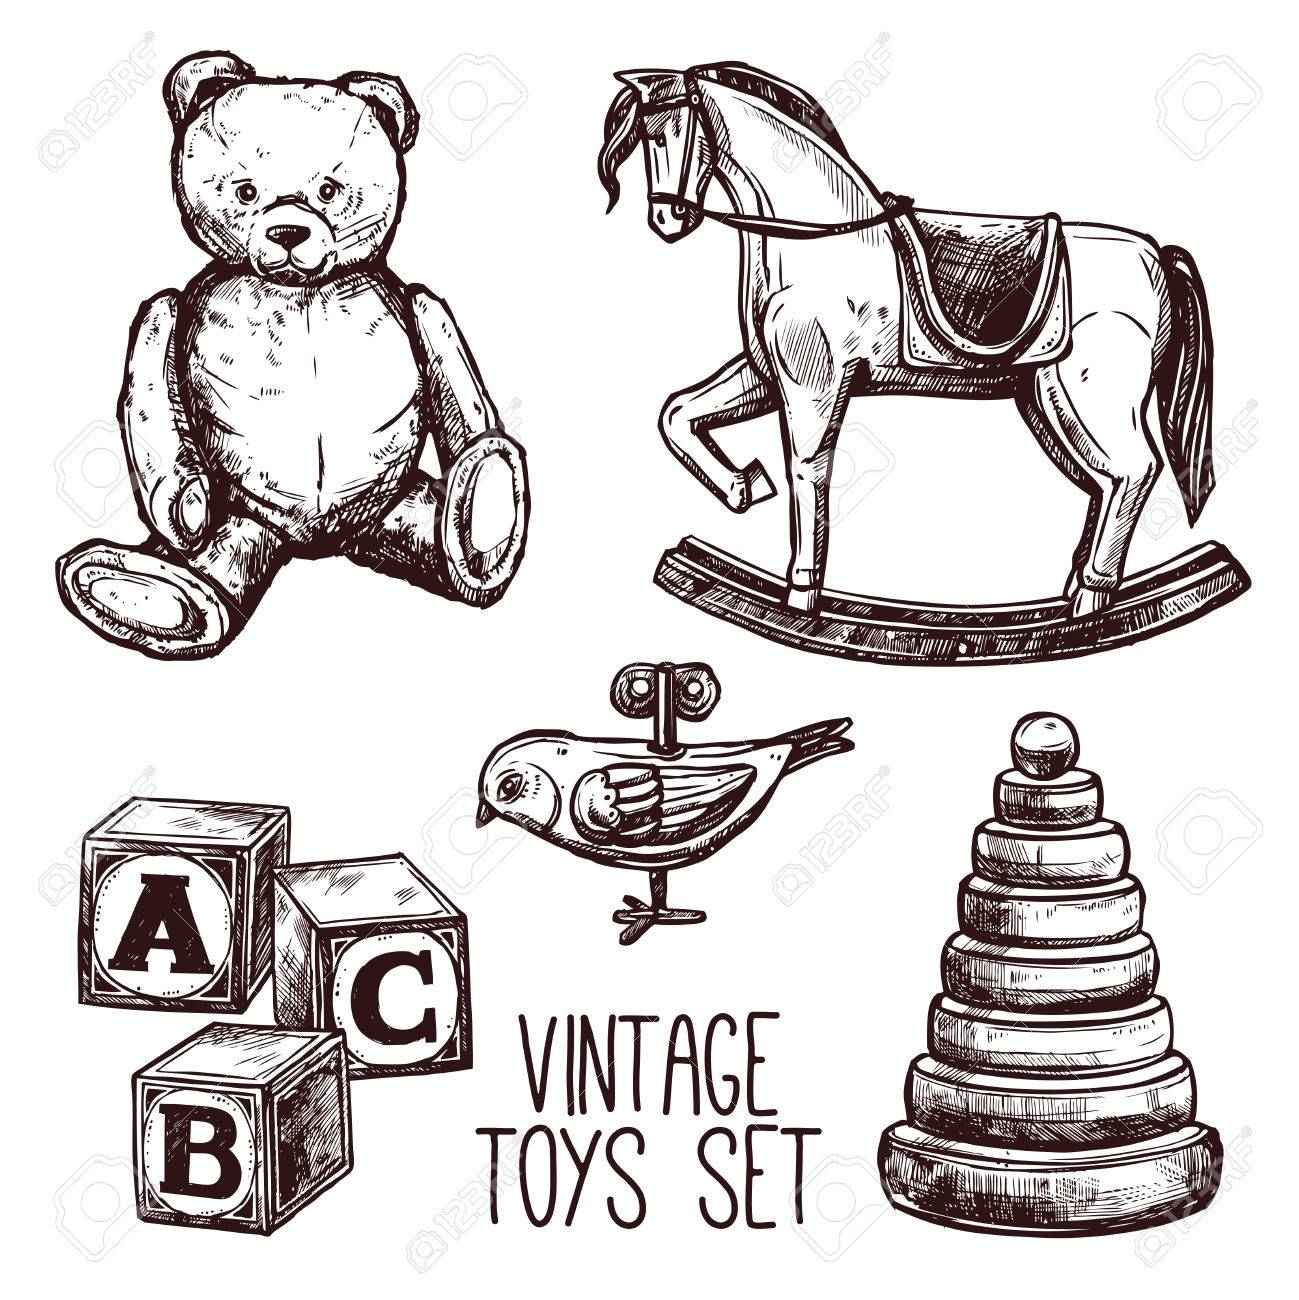 Vintage Toys Set With Sketch Teddy Bear Rocking Horse And Pyramid Royalty Free Cliparts Vectors And Stock Illustration Image 42622642